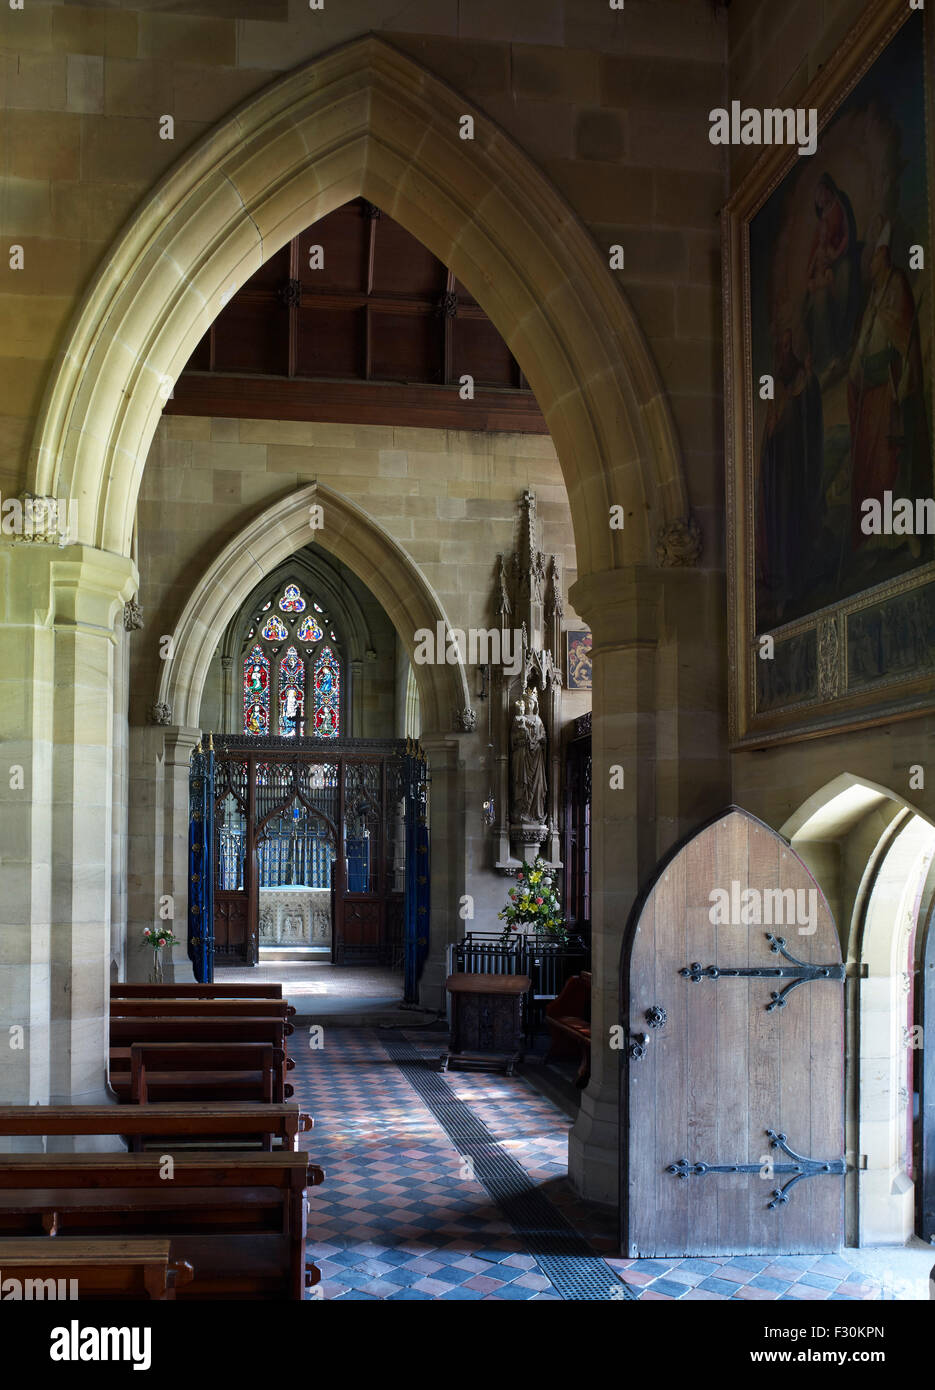 Ramsgate, St Augustine Roman Catholic Church, Kent. Interior by A.W.N. Pugin in the Gothic Revival - Stock Image